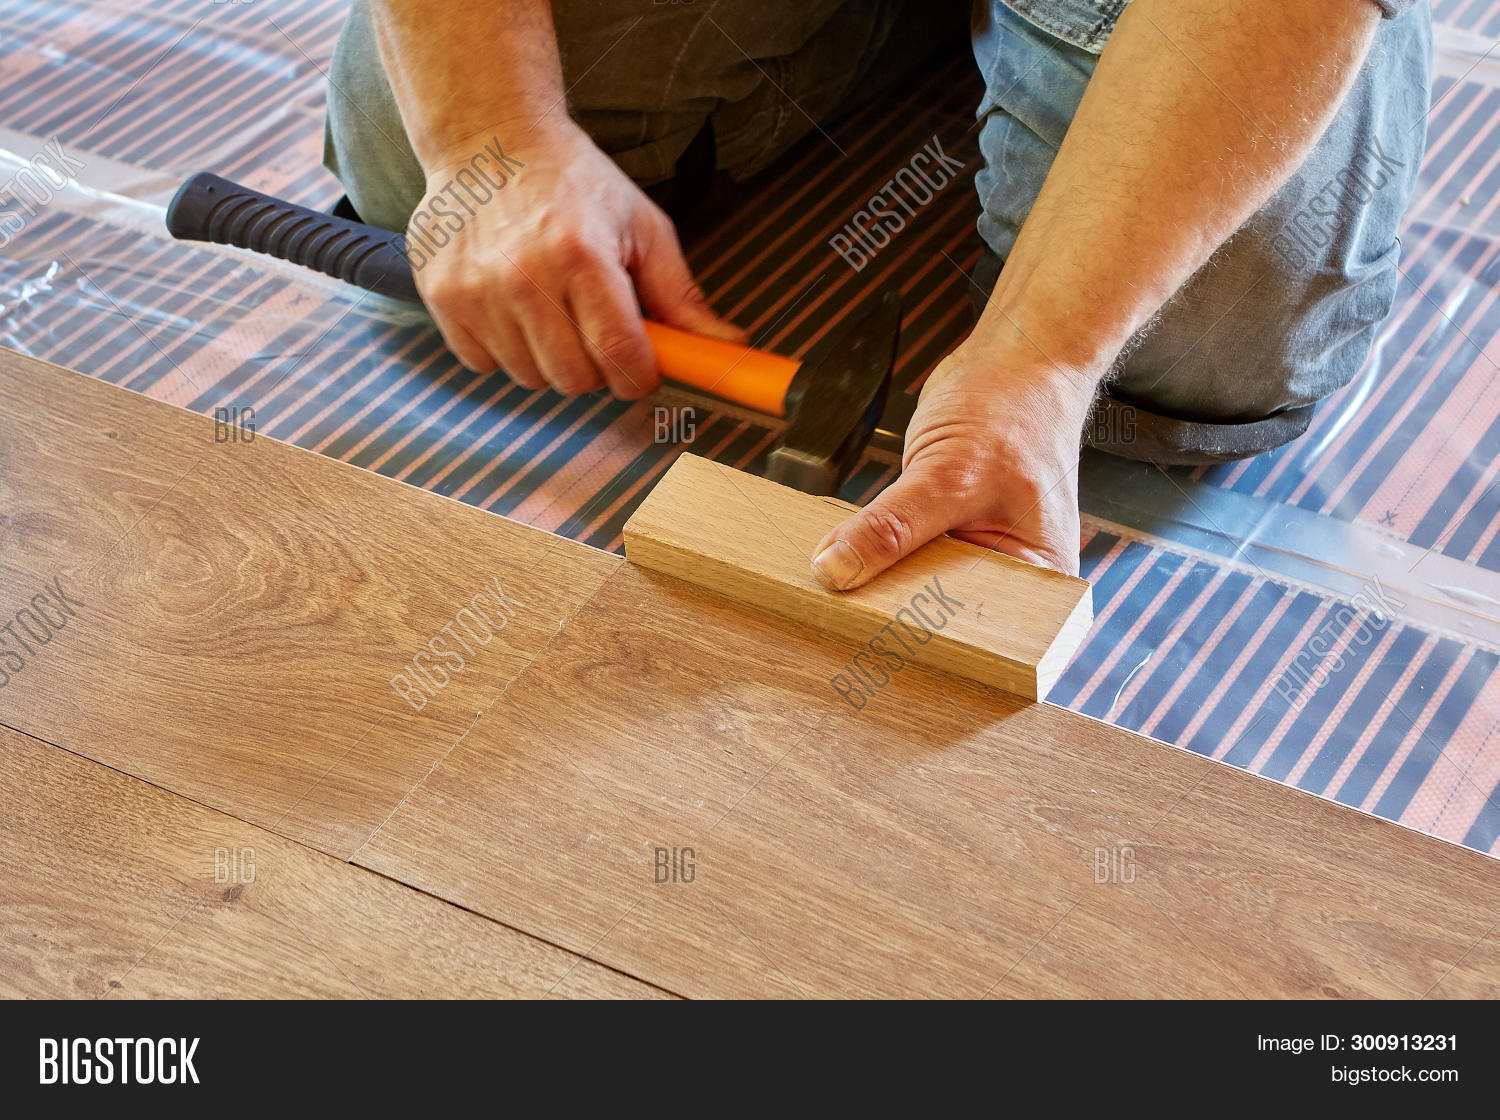 Laminate Flooring Image Photo Free Trial Stock